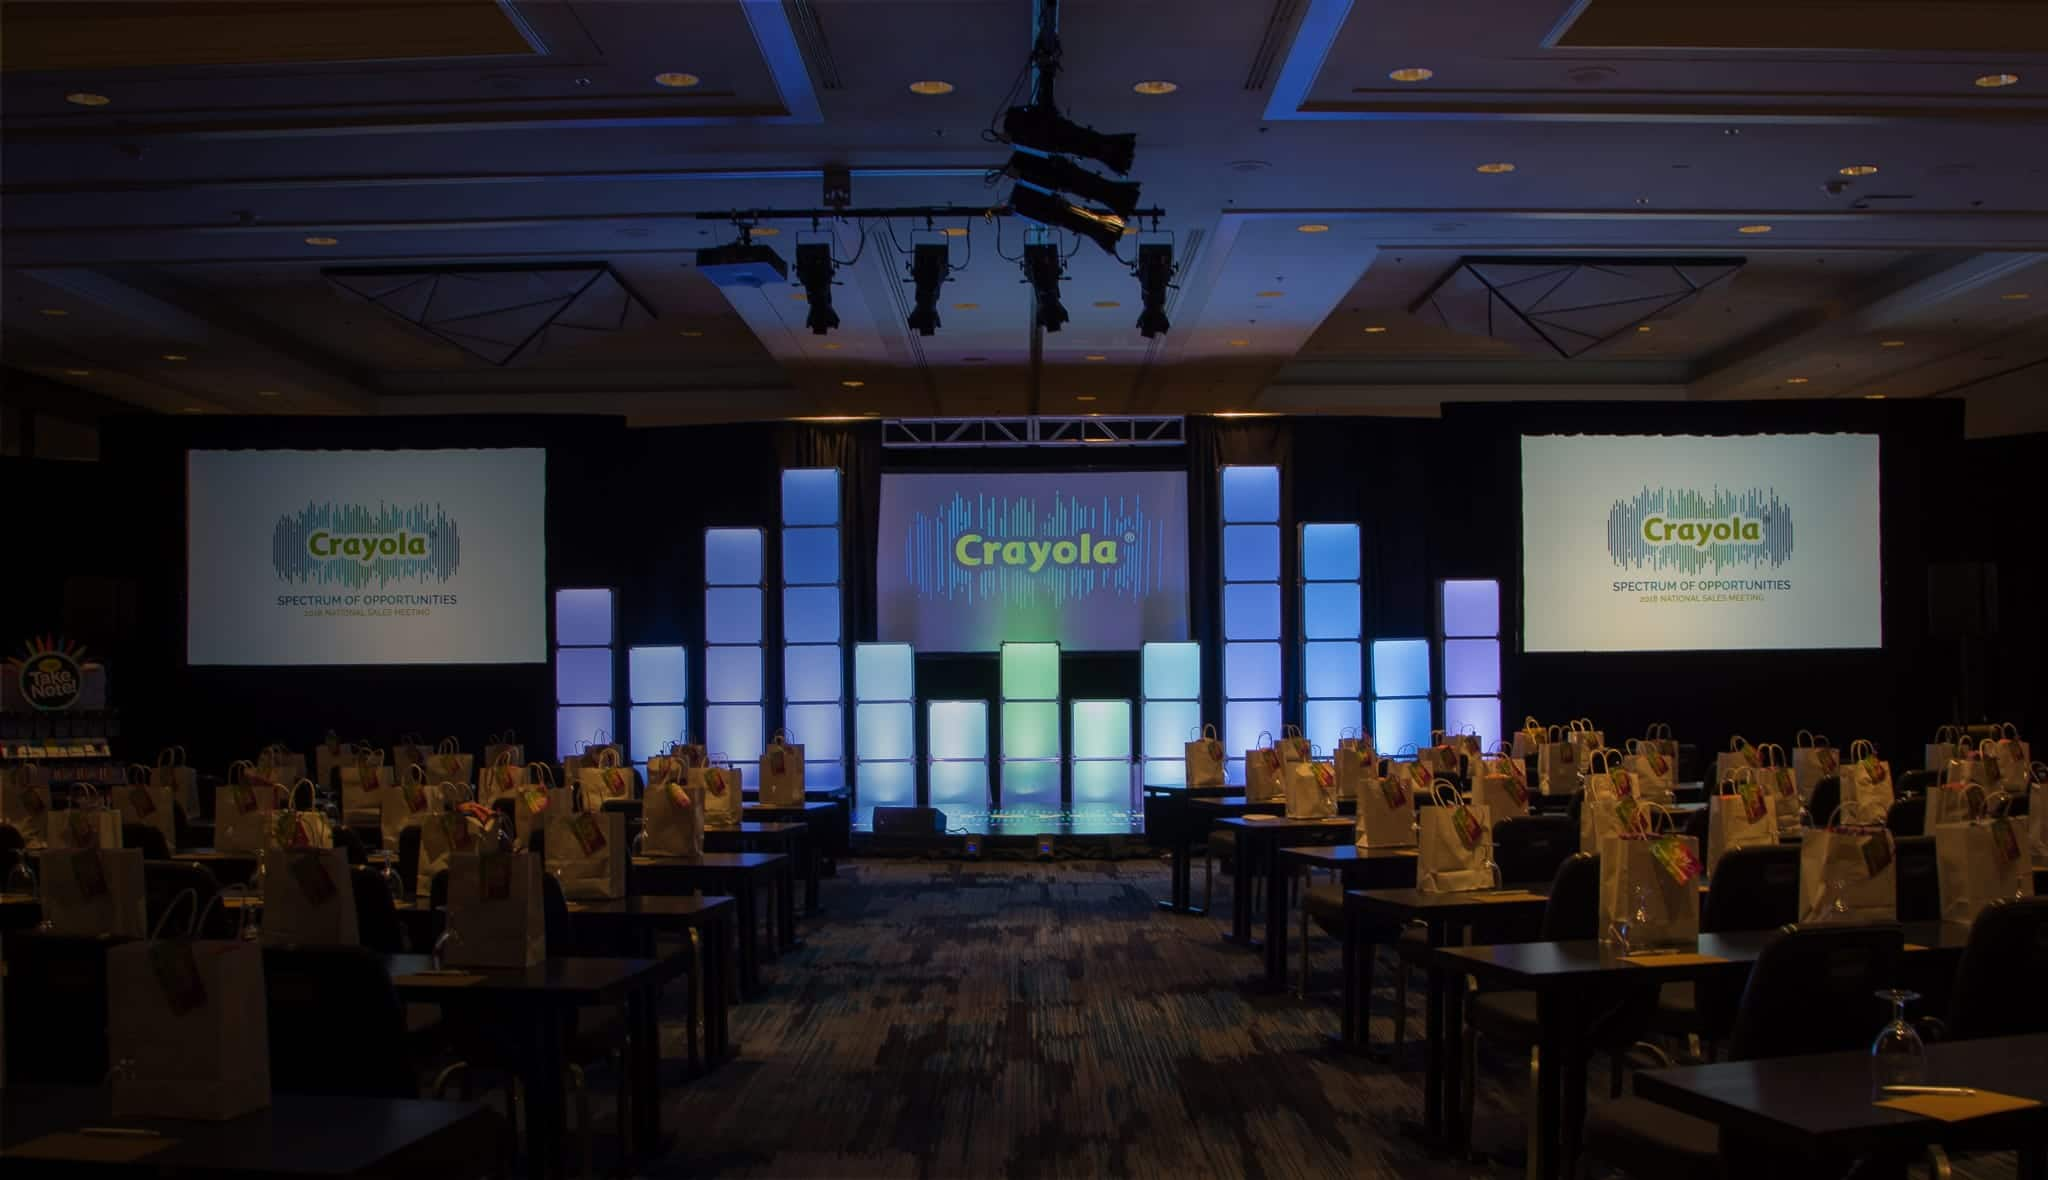 Crayola Spectrum Of Opportunities Sales Meeting